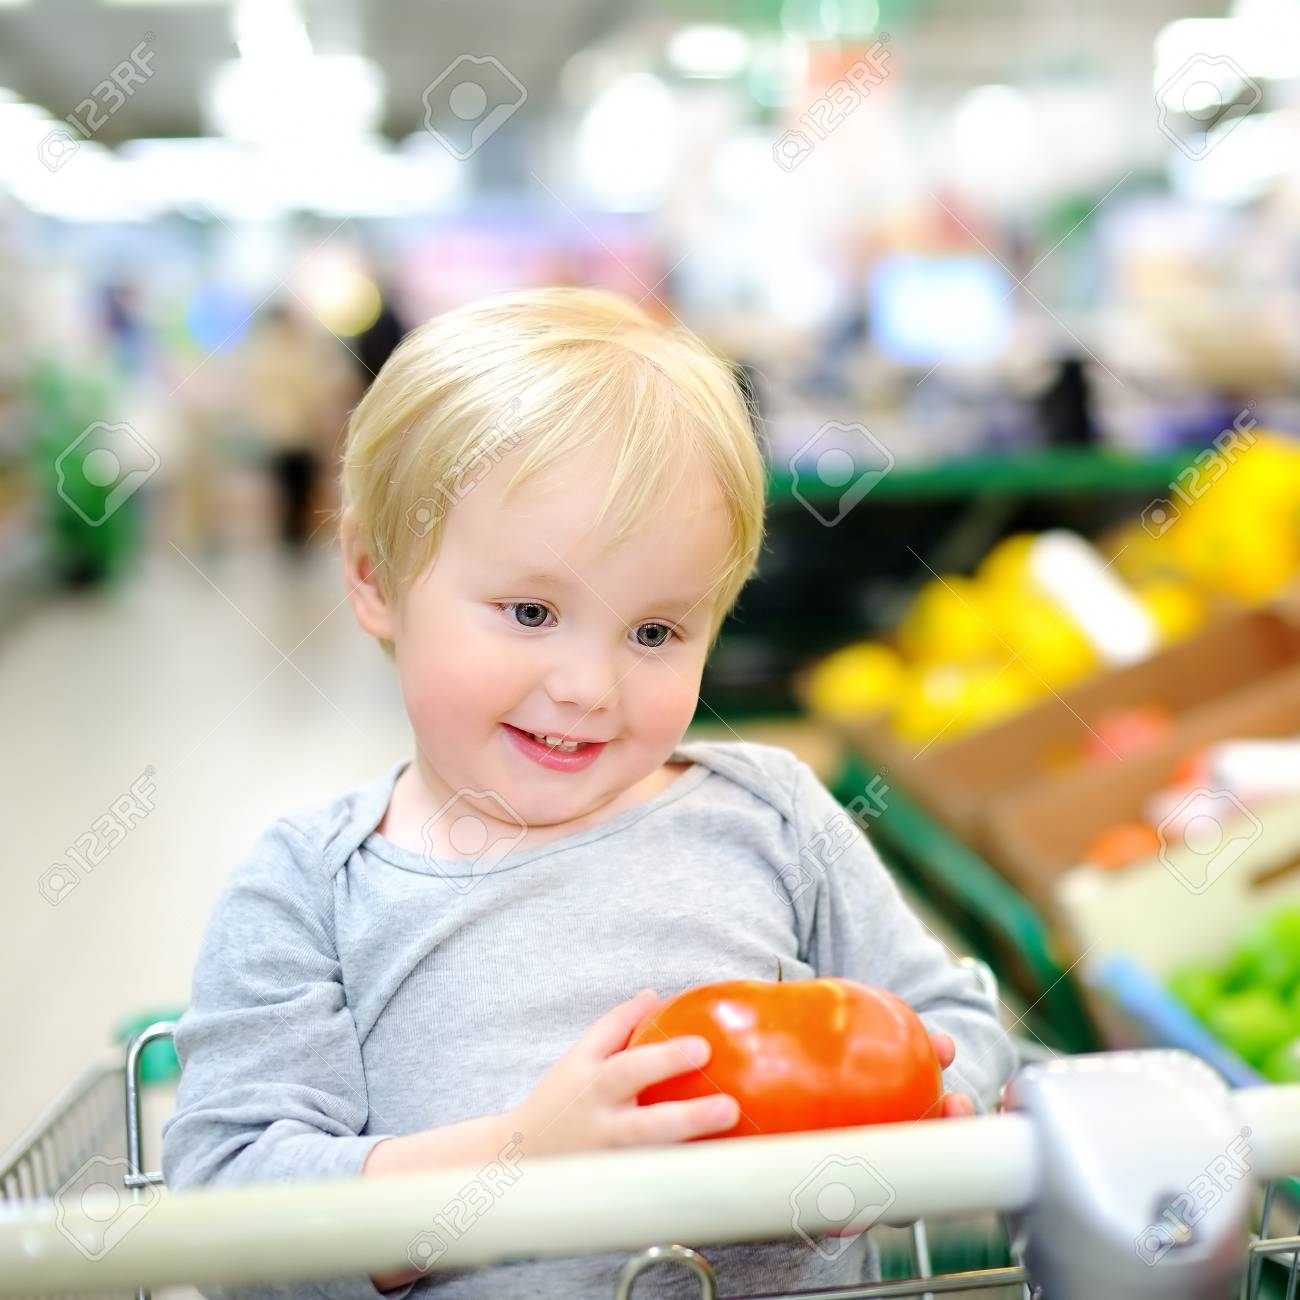 b38e6985f Cute toddler boy sitting in the shopping cart in a food store..